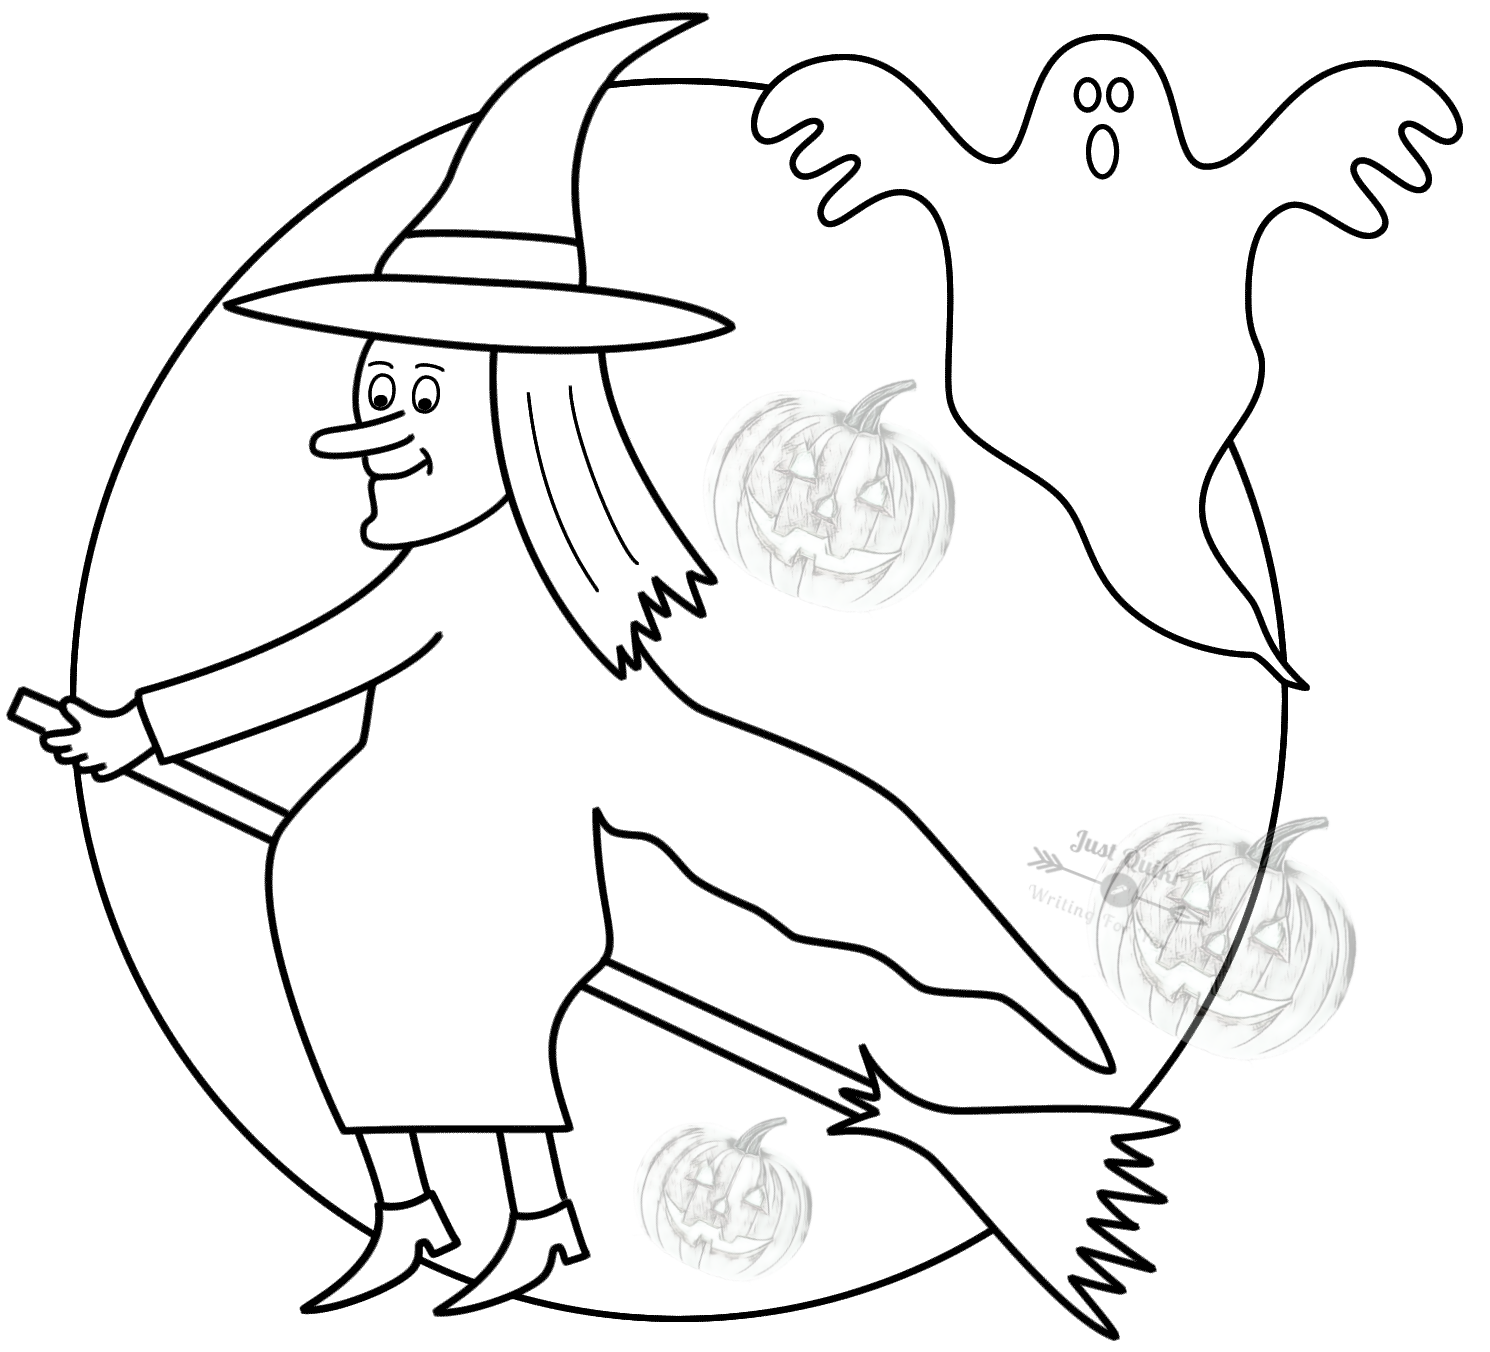 Halloween Day Coloring Pages Drawings for Witch on Broom